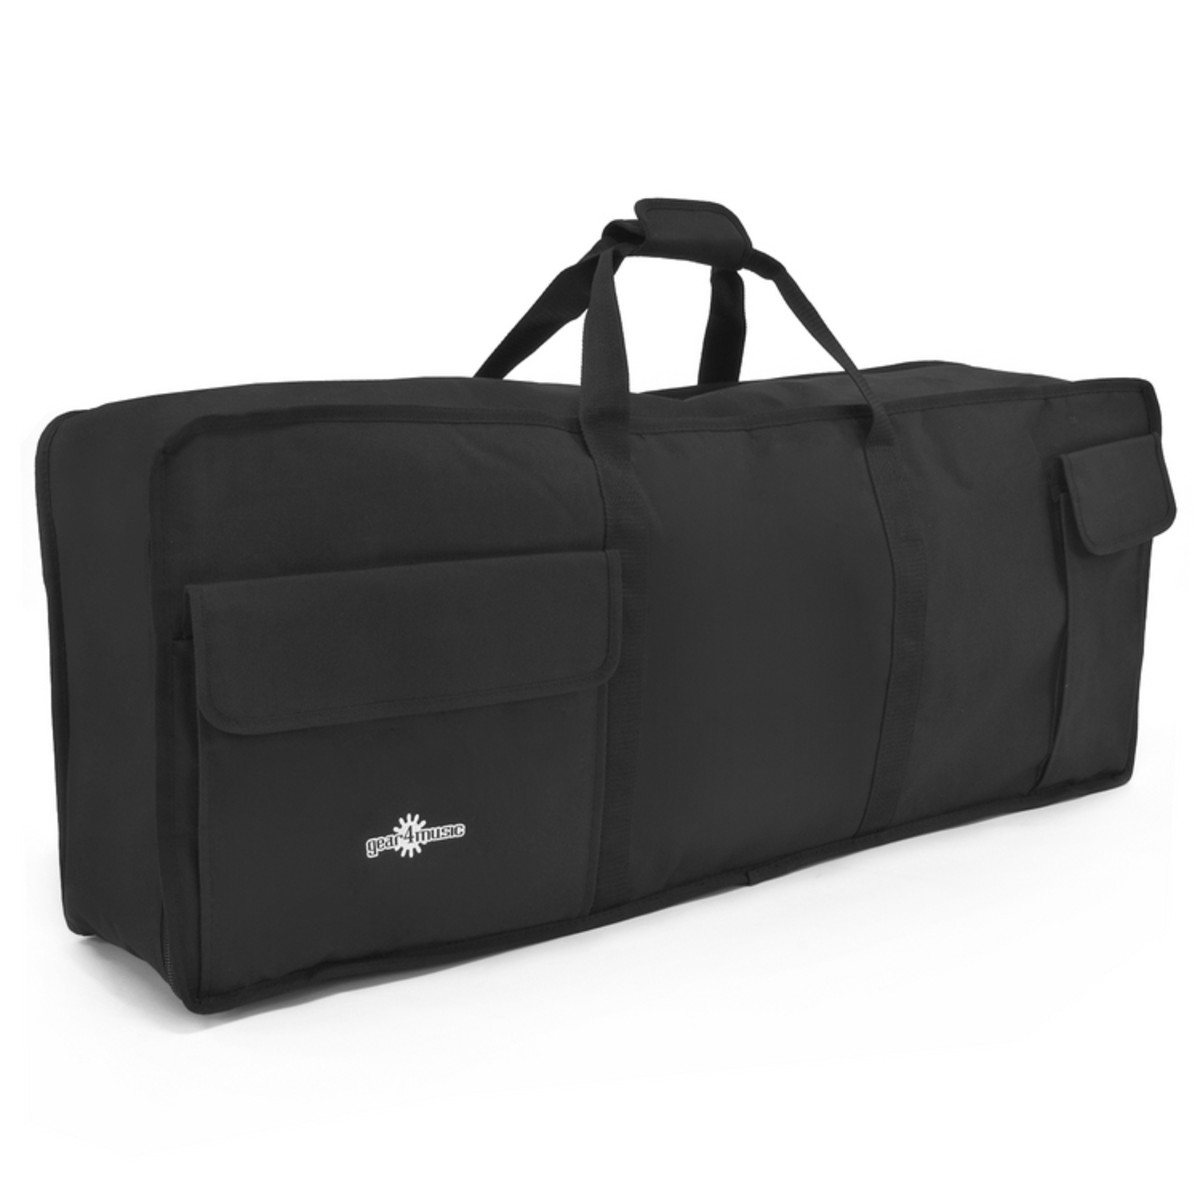 Image of 88 Key Keyboard Bag with Straps by Gear4music